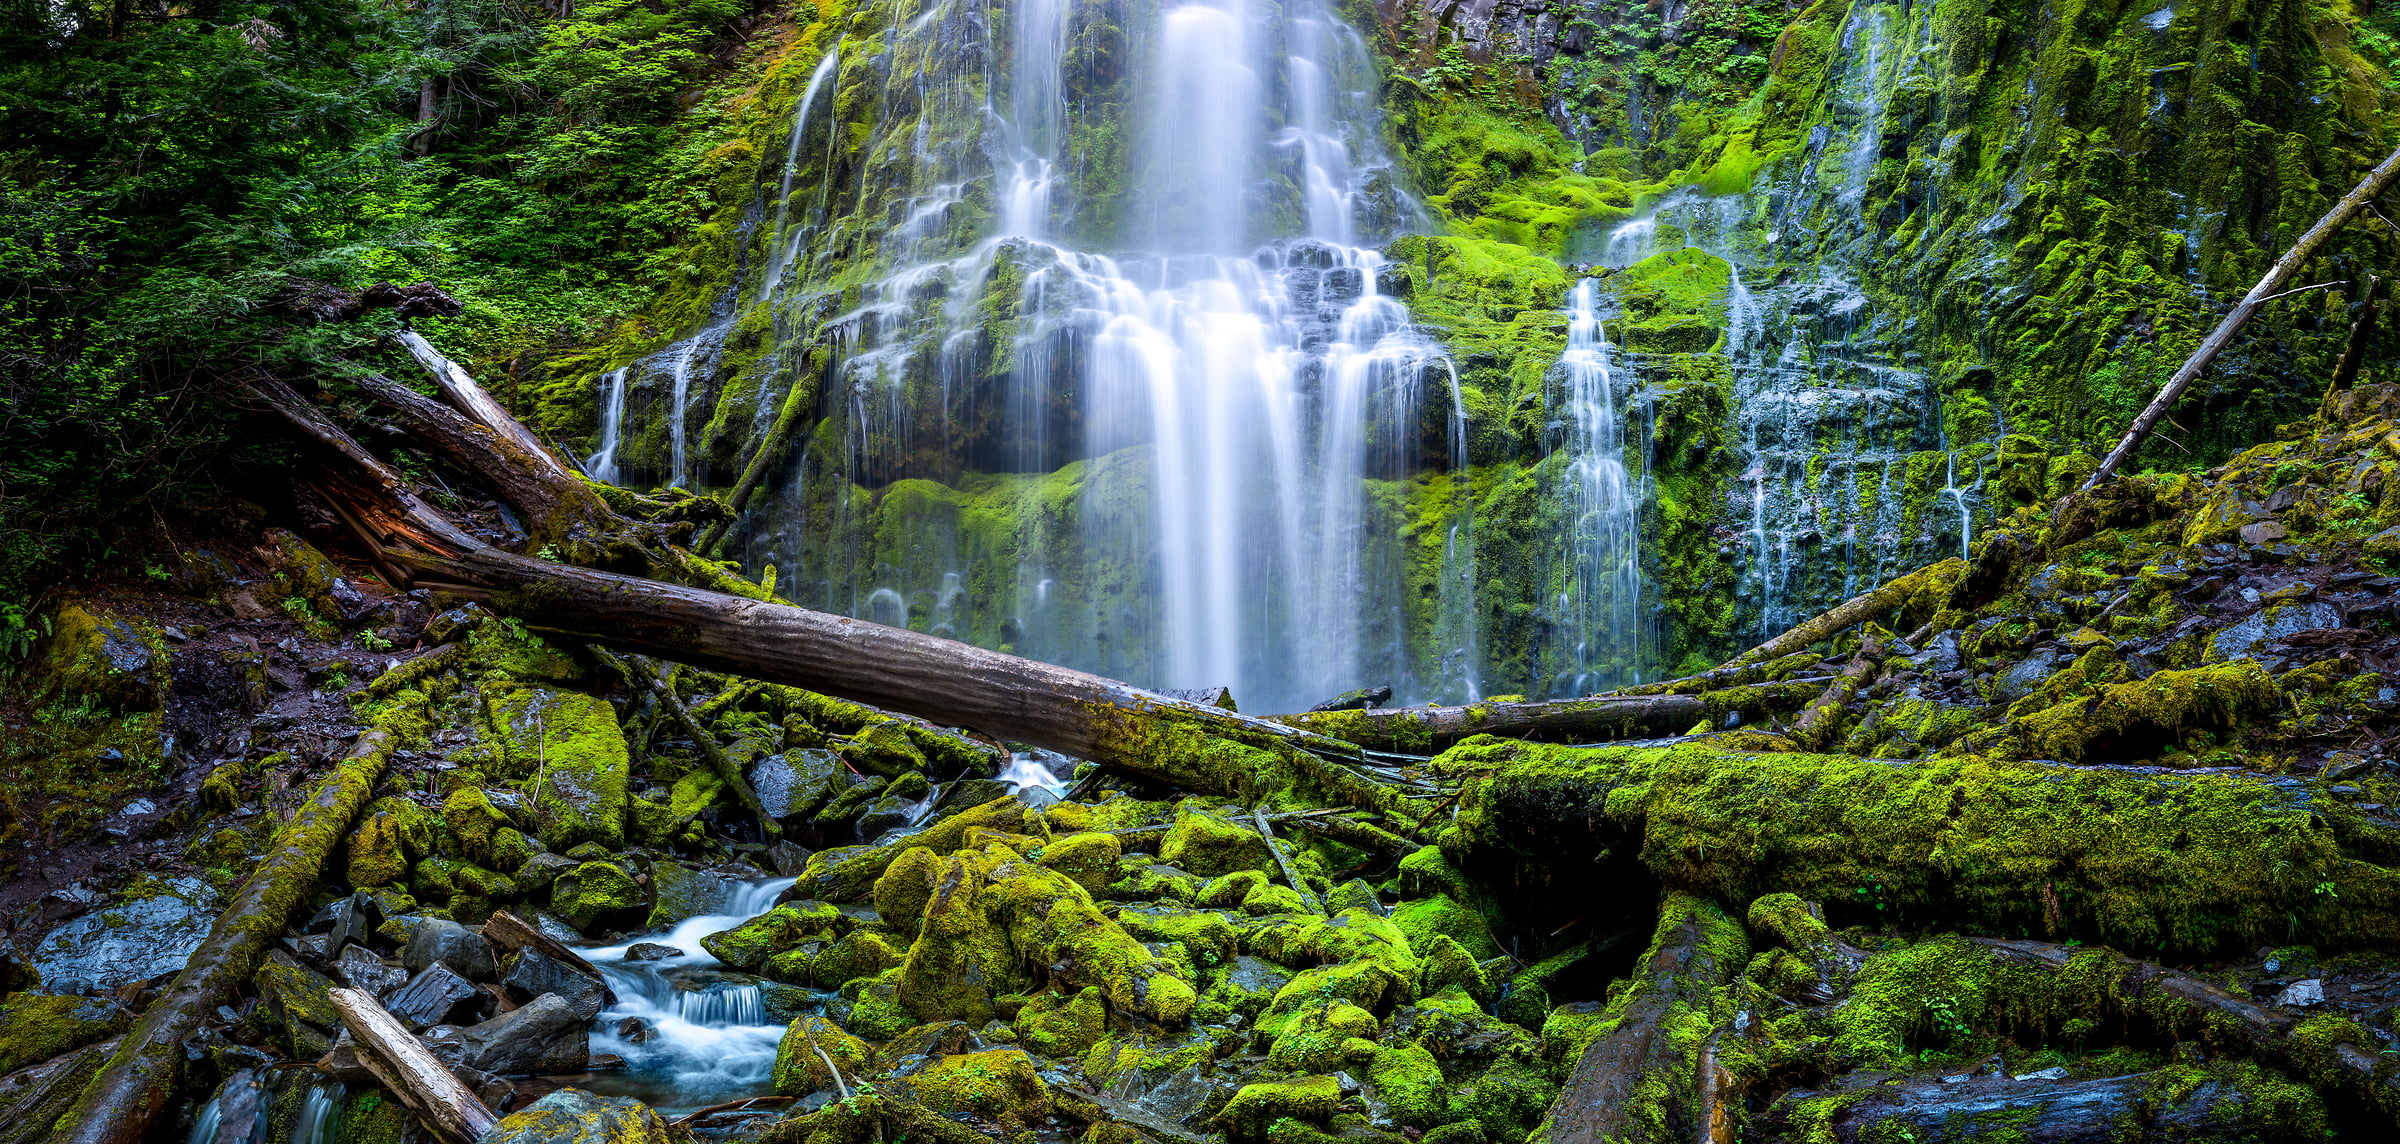 169 megapixels! A very high resolution, large-format VAST photo print of Proxy Falls: a lush green waterfall in Willamette National Forest; fine art nature photograph created by Tim Shields in Oregon